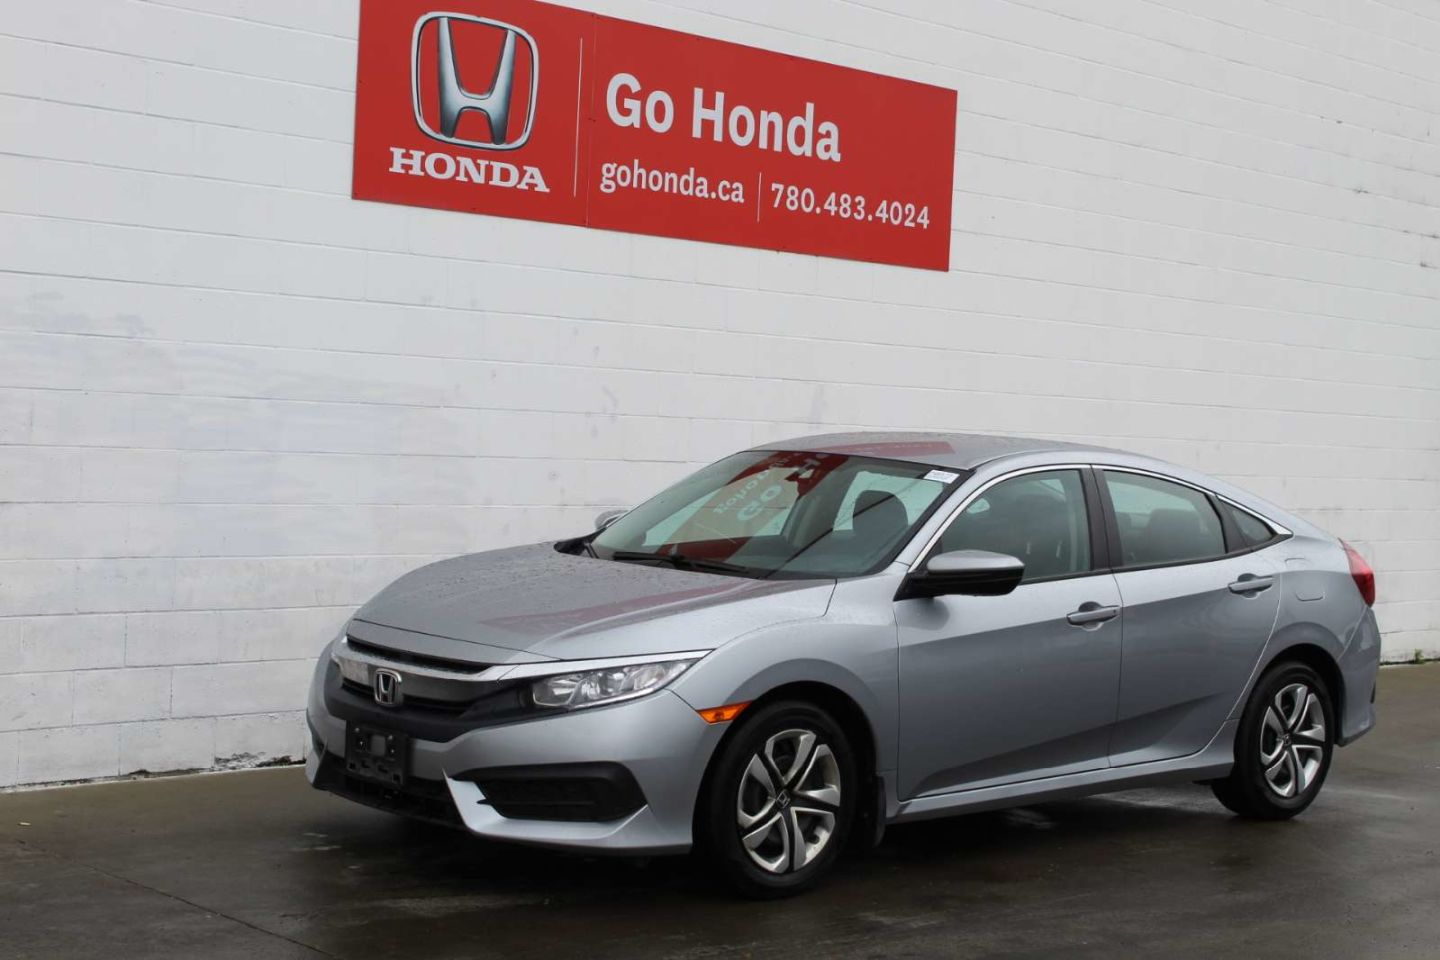 2018 Honda Civic Sedan LX for sale in Edmonton, Alberta